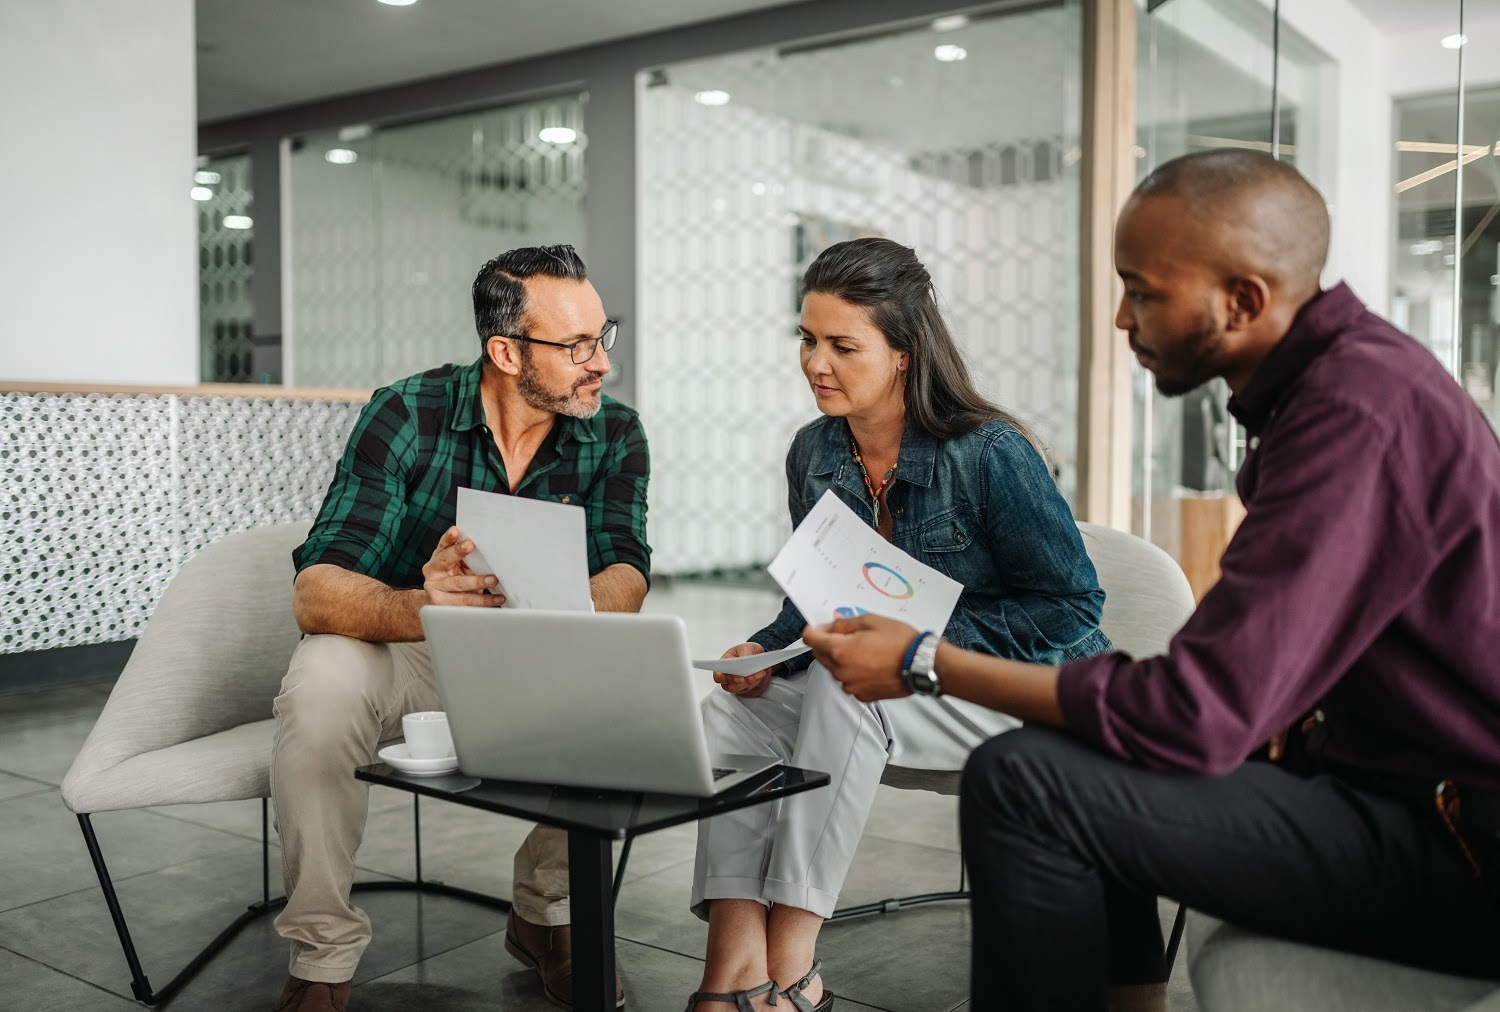 How to get a line of credit: A group of people discuss finances